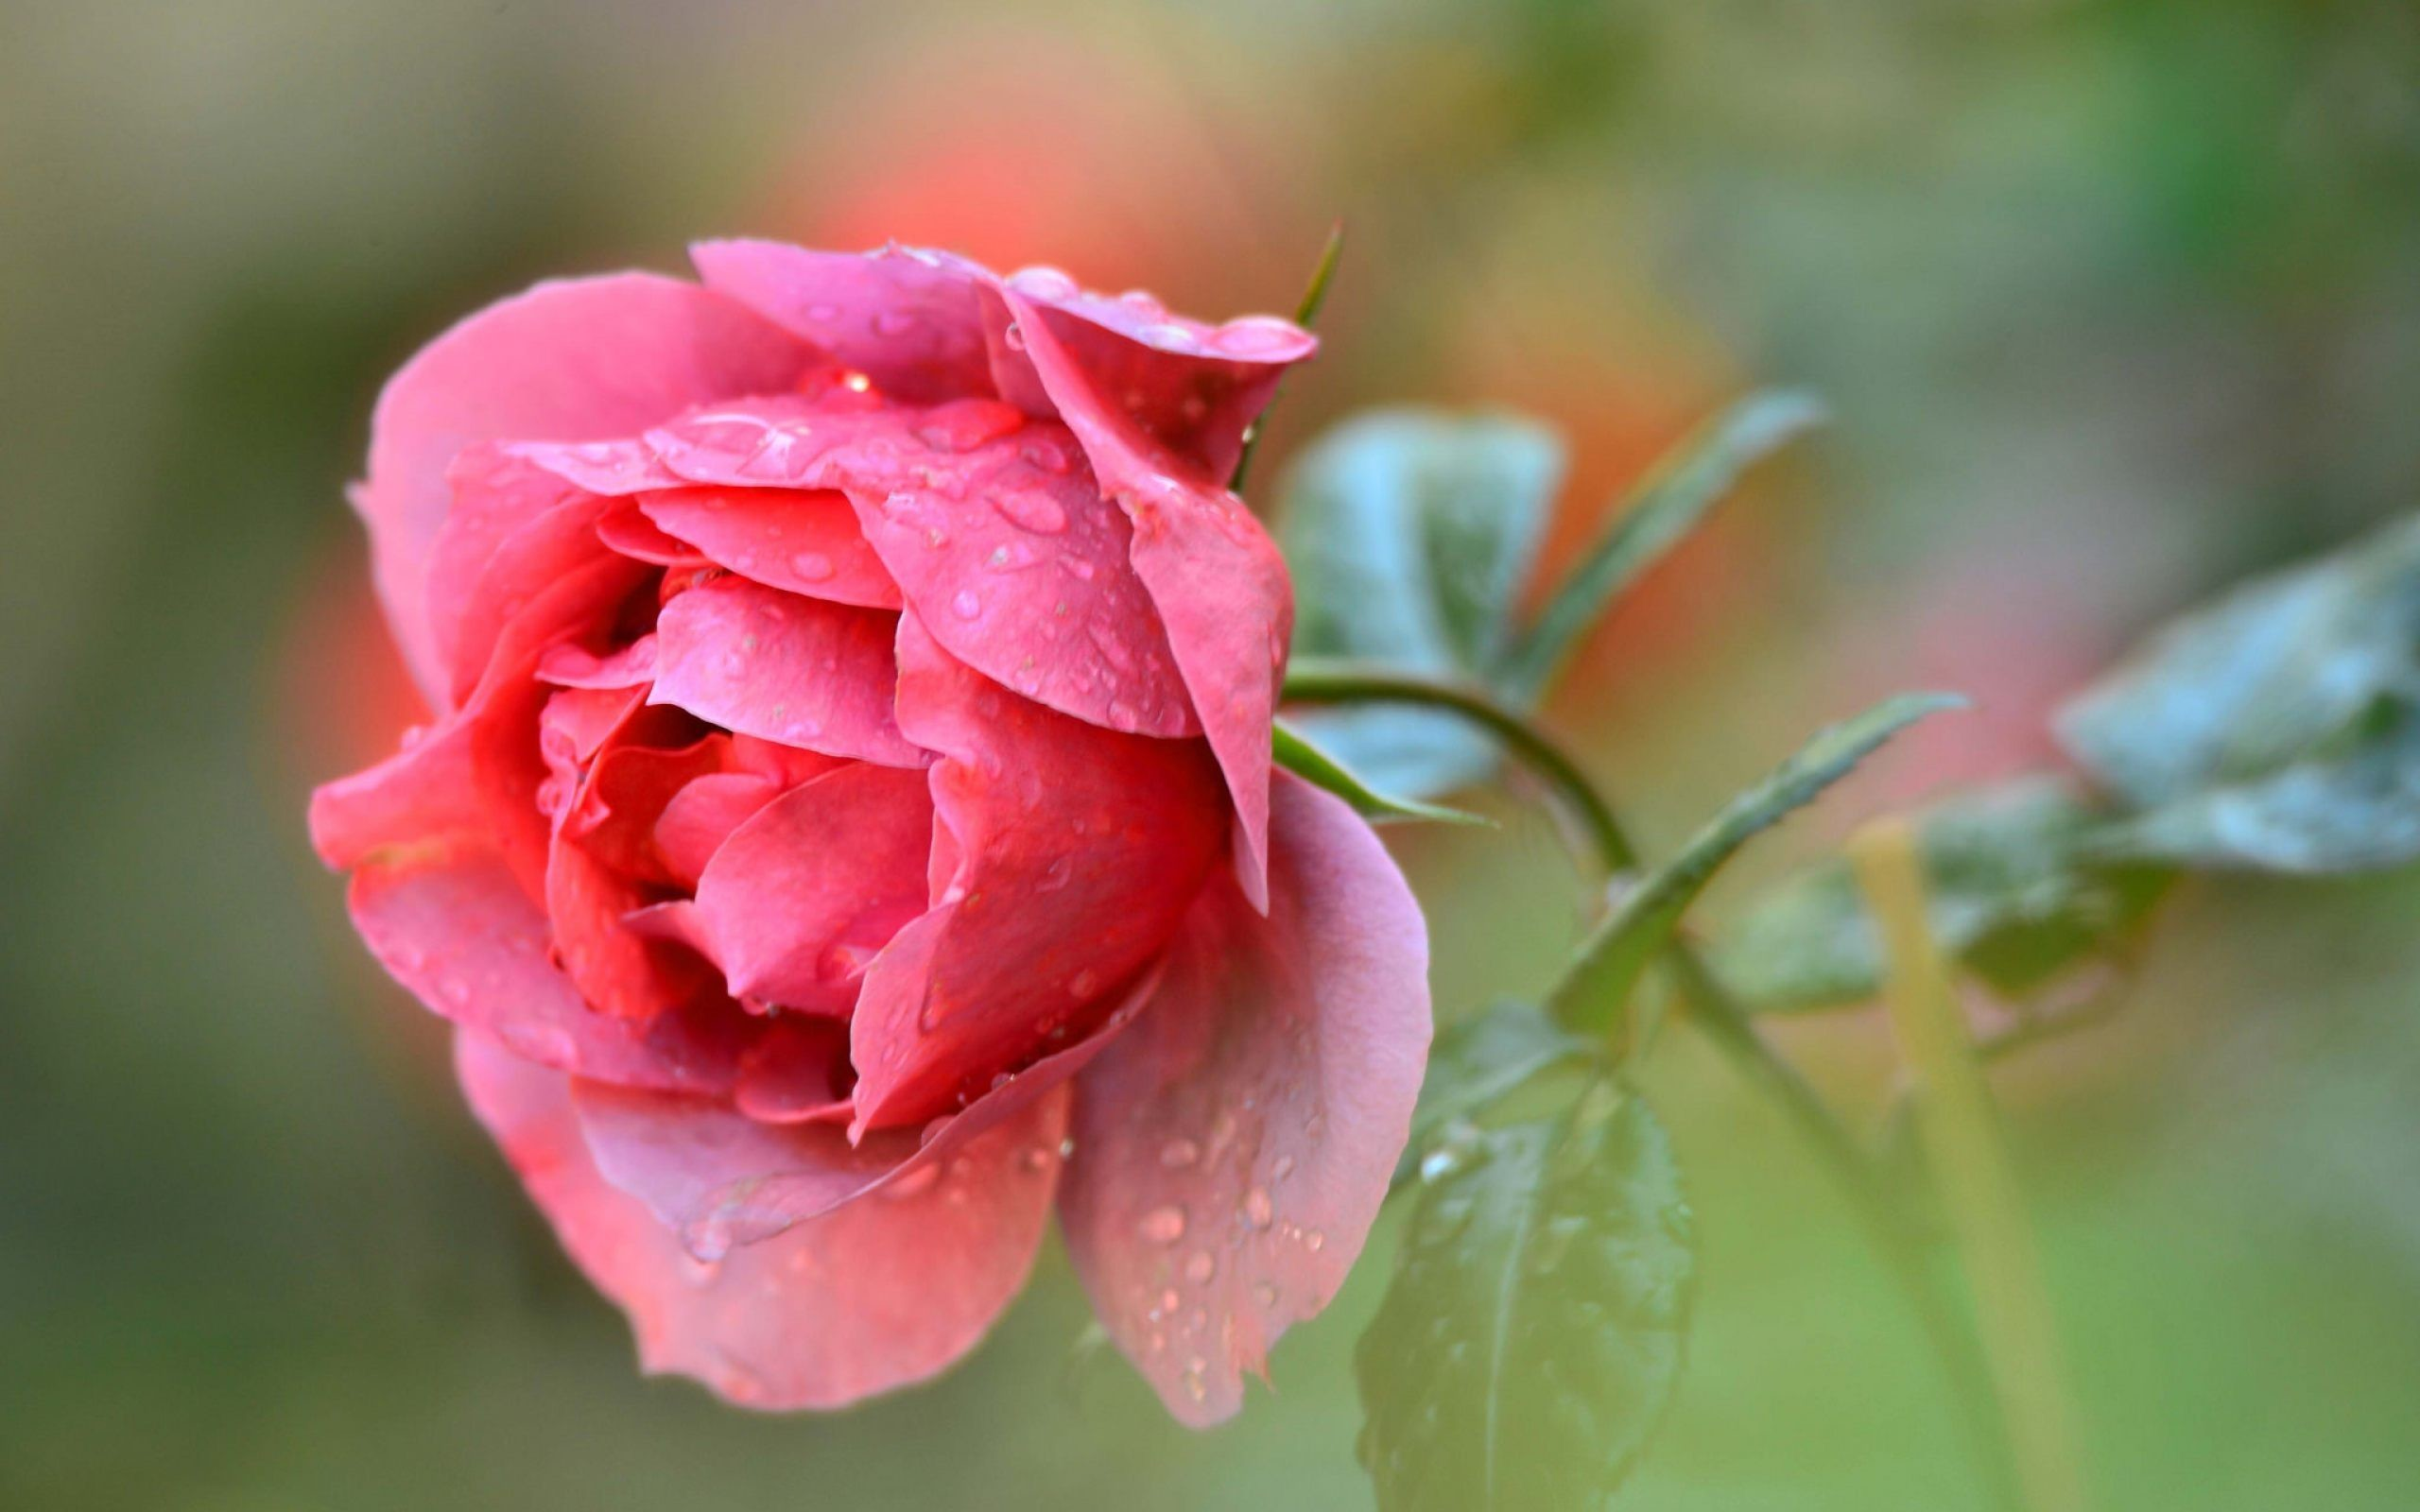 Res: 2560x1600, Fresh Pink Rose Wallpaper for desktop and mobile in high resolution free  download. We have